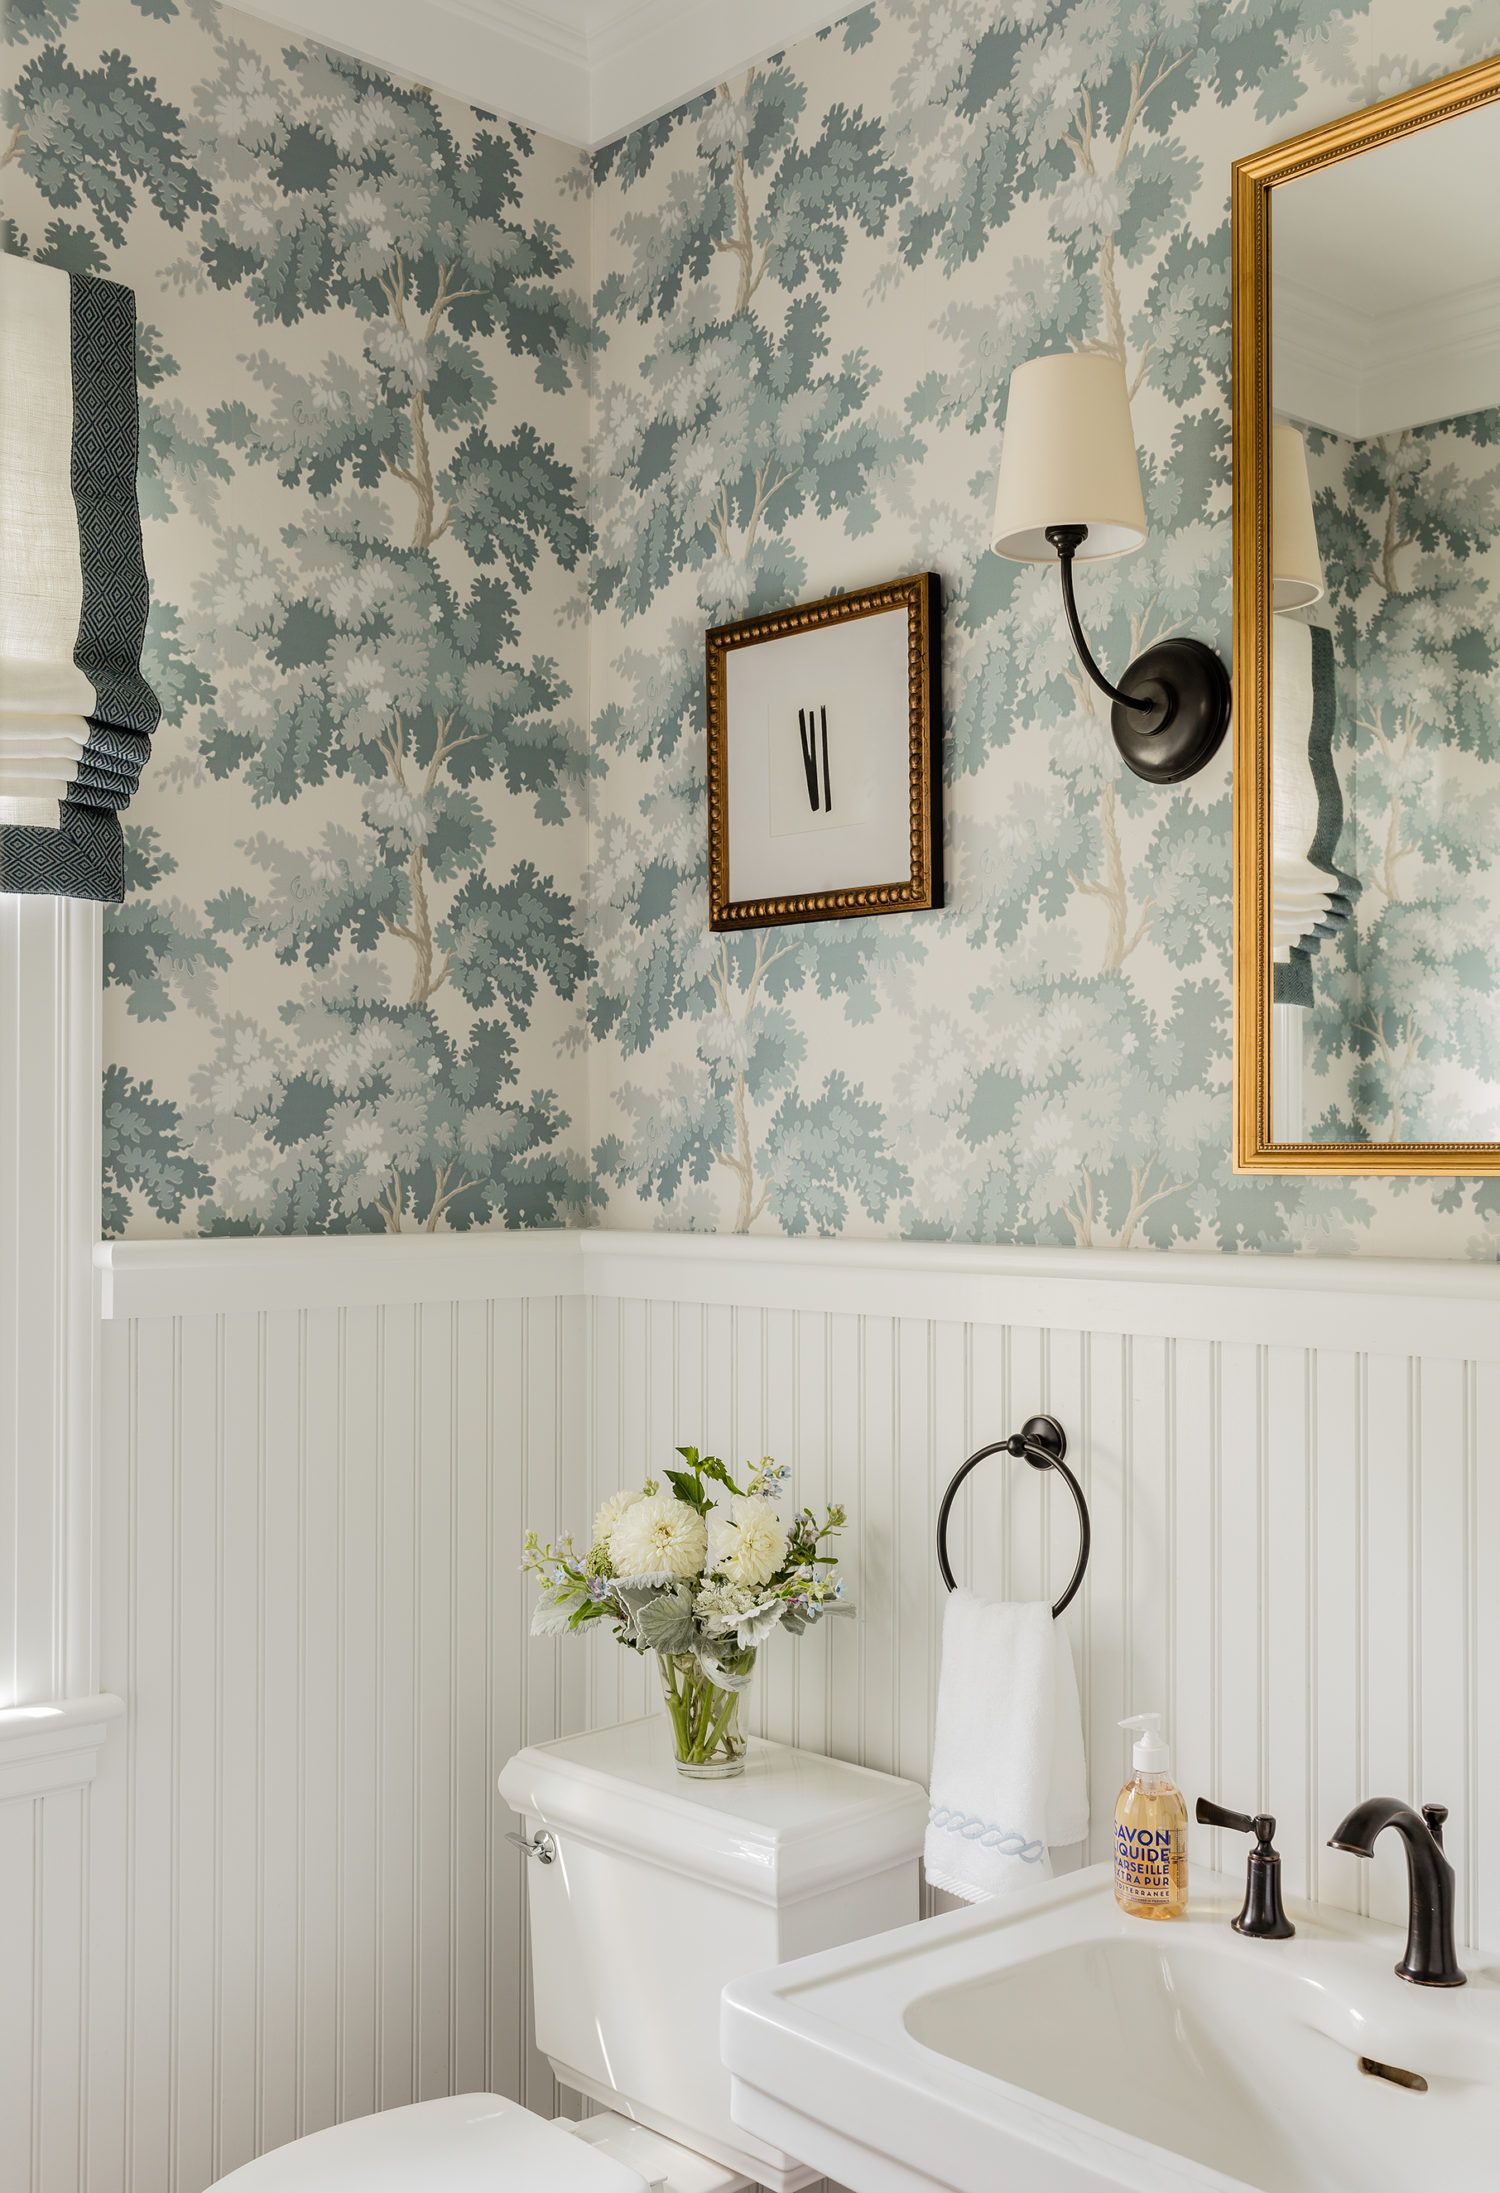 A Favorite Project From The Book Elements Of Style Bathroom Wallpaper Amazing Bathrooms Powder Room Wallpaper